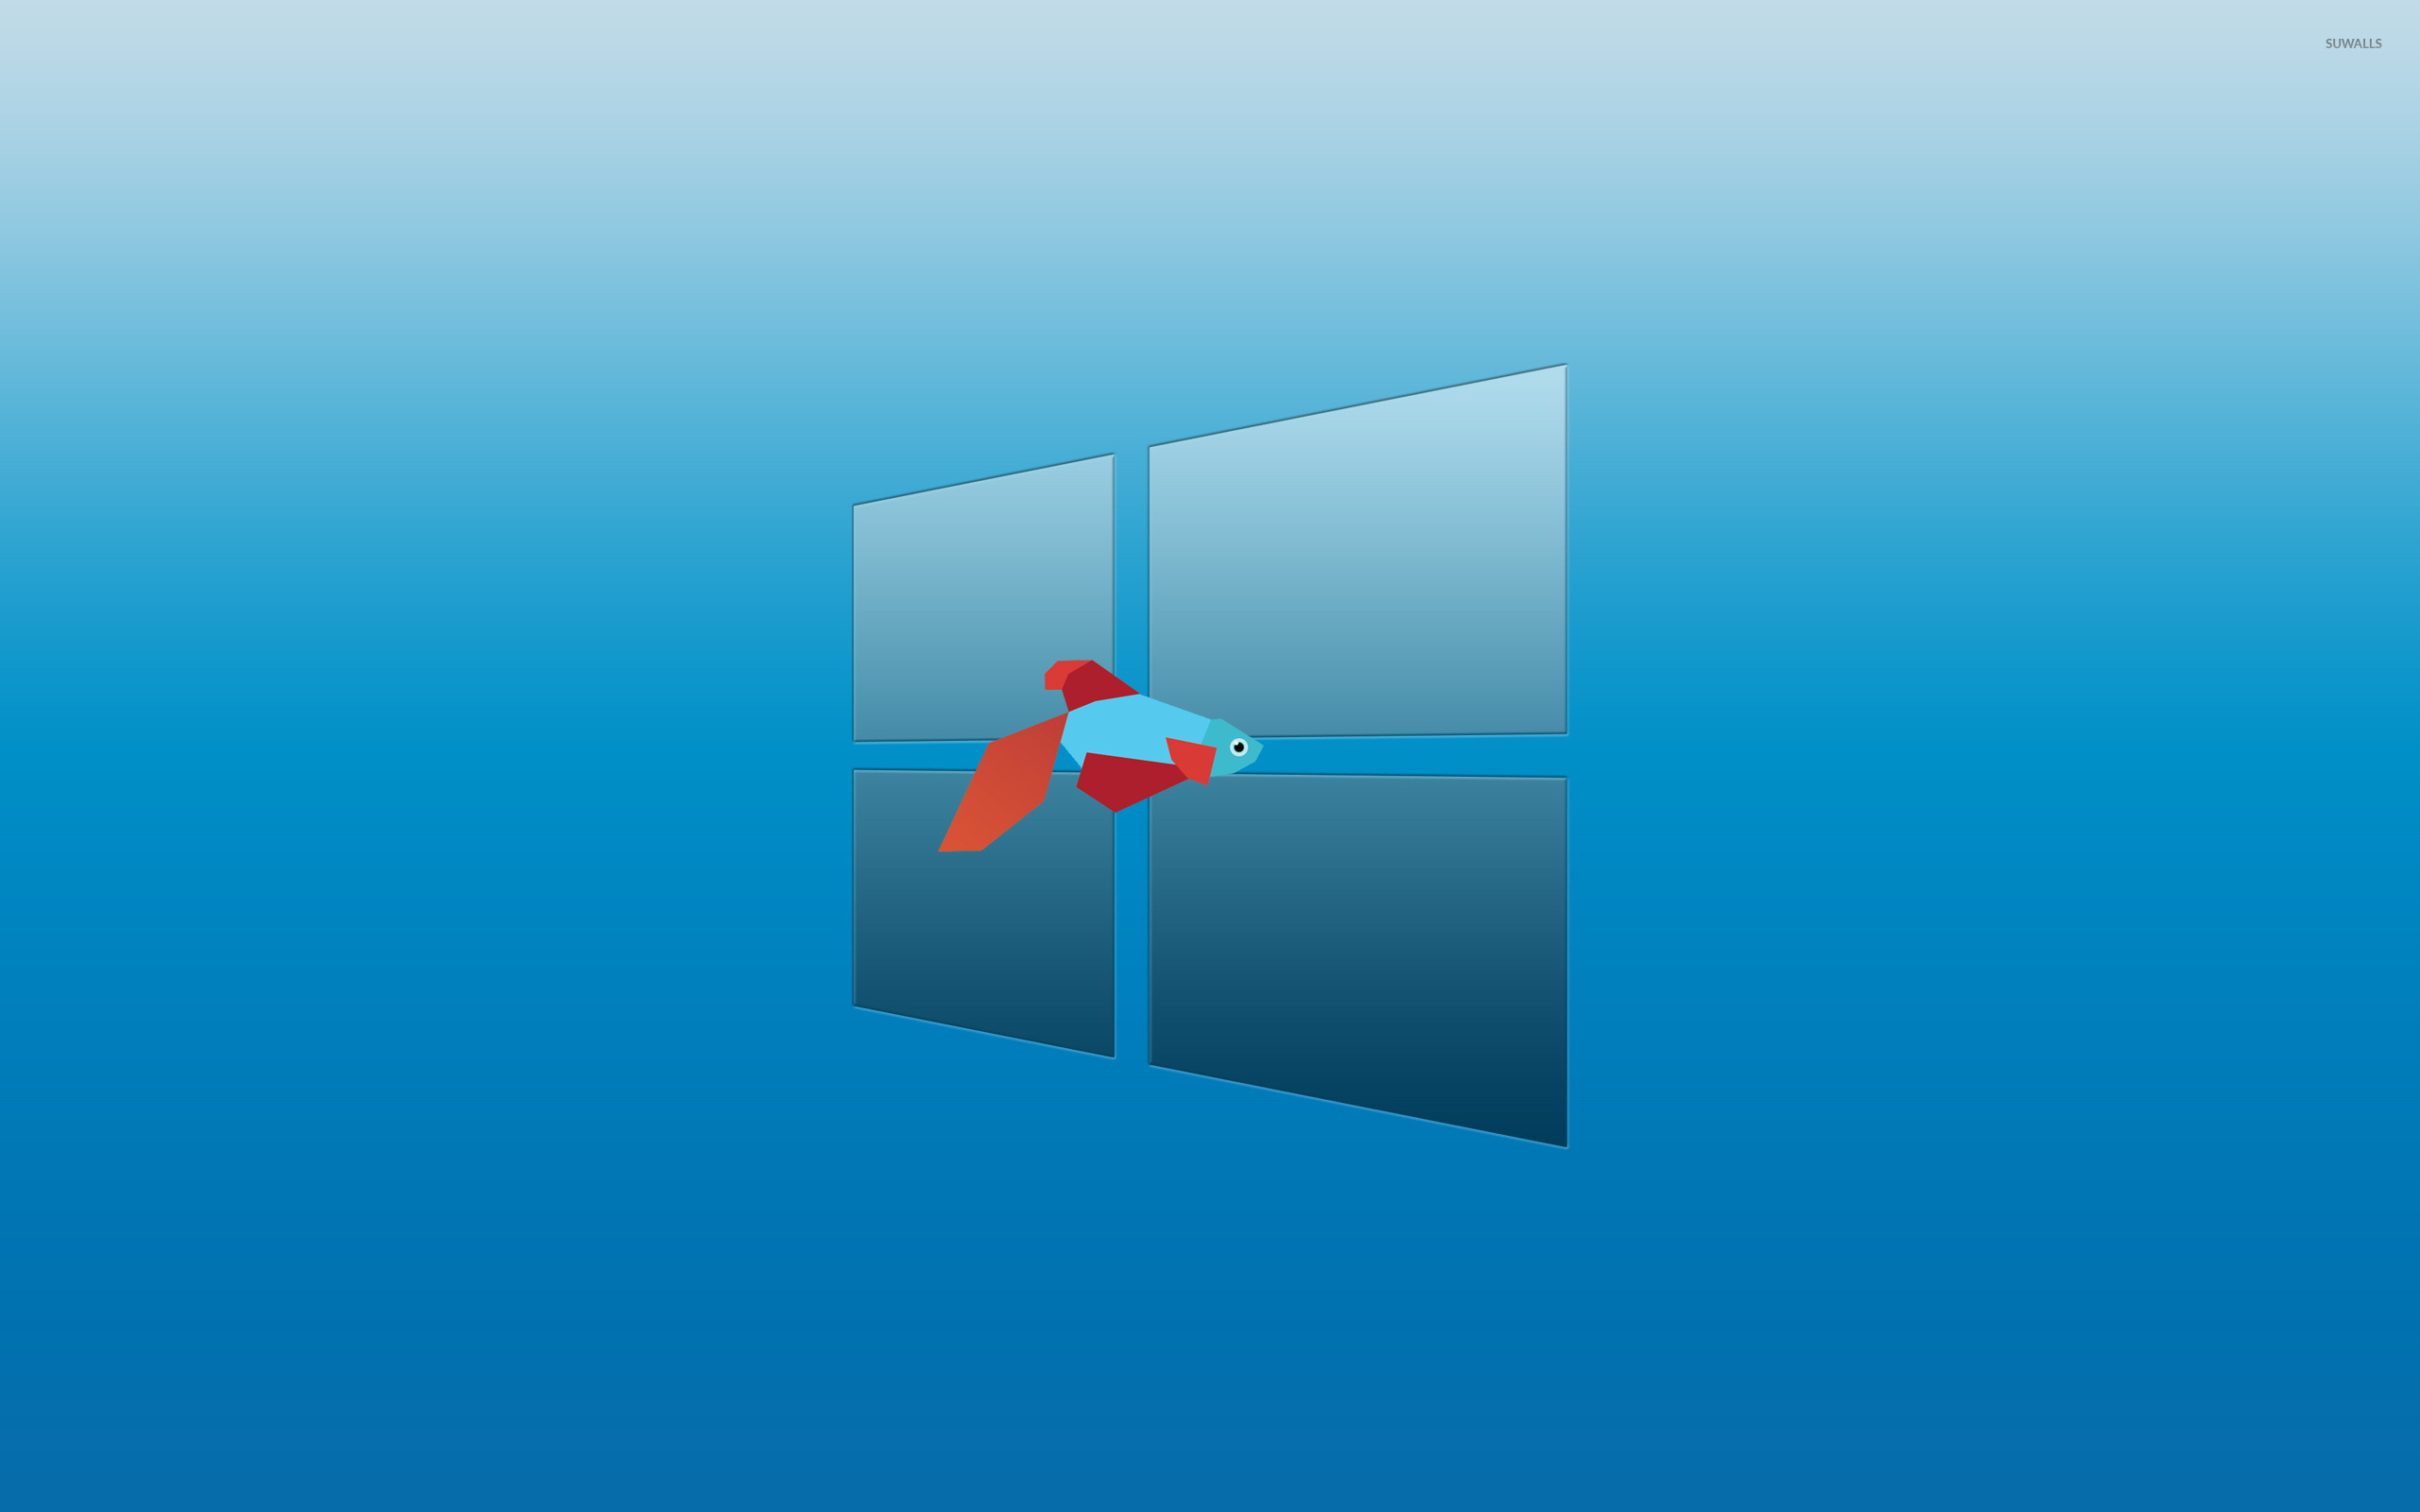 windows 8 and a fish wallpaper - computer wallpapers - #20995